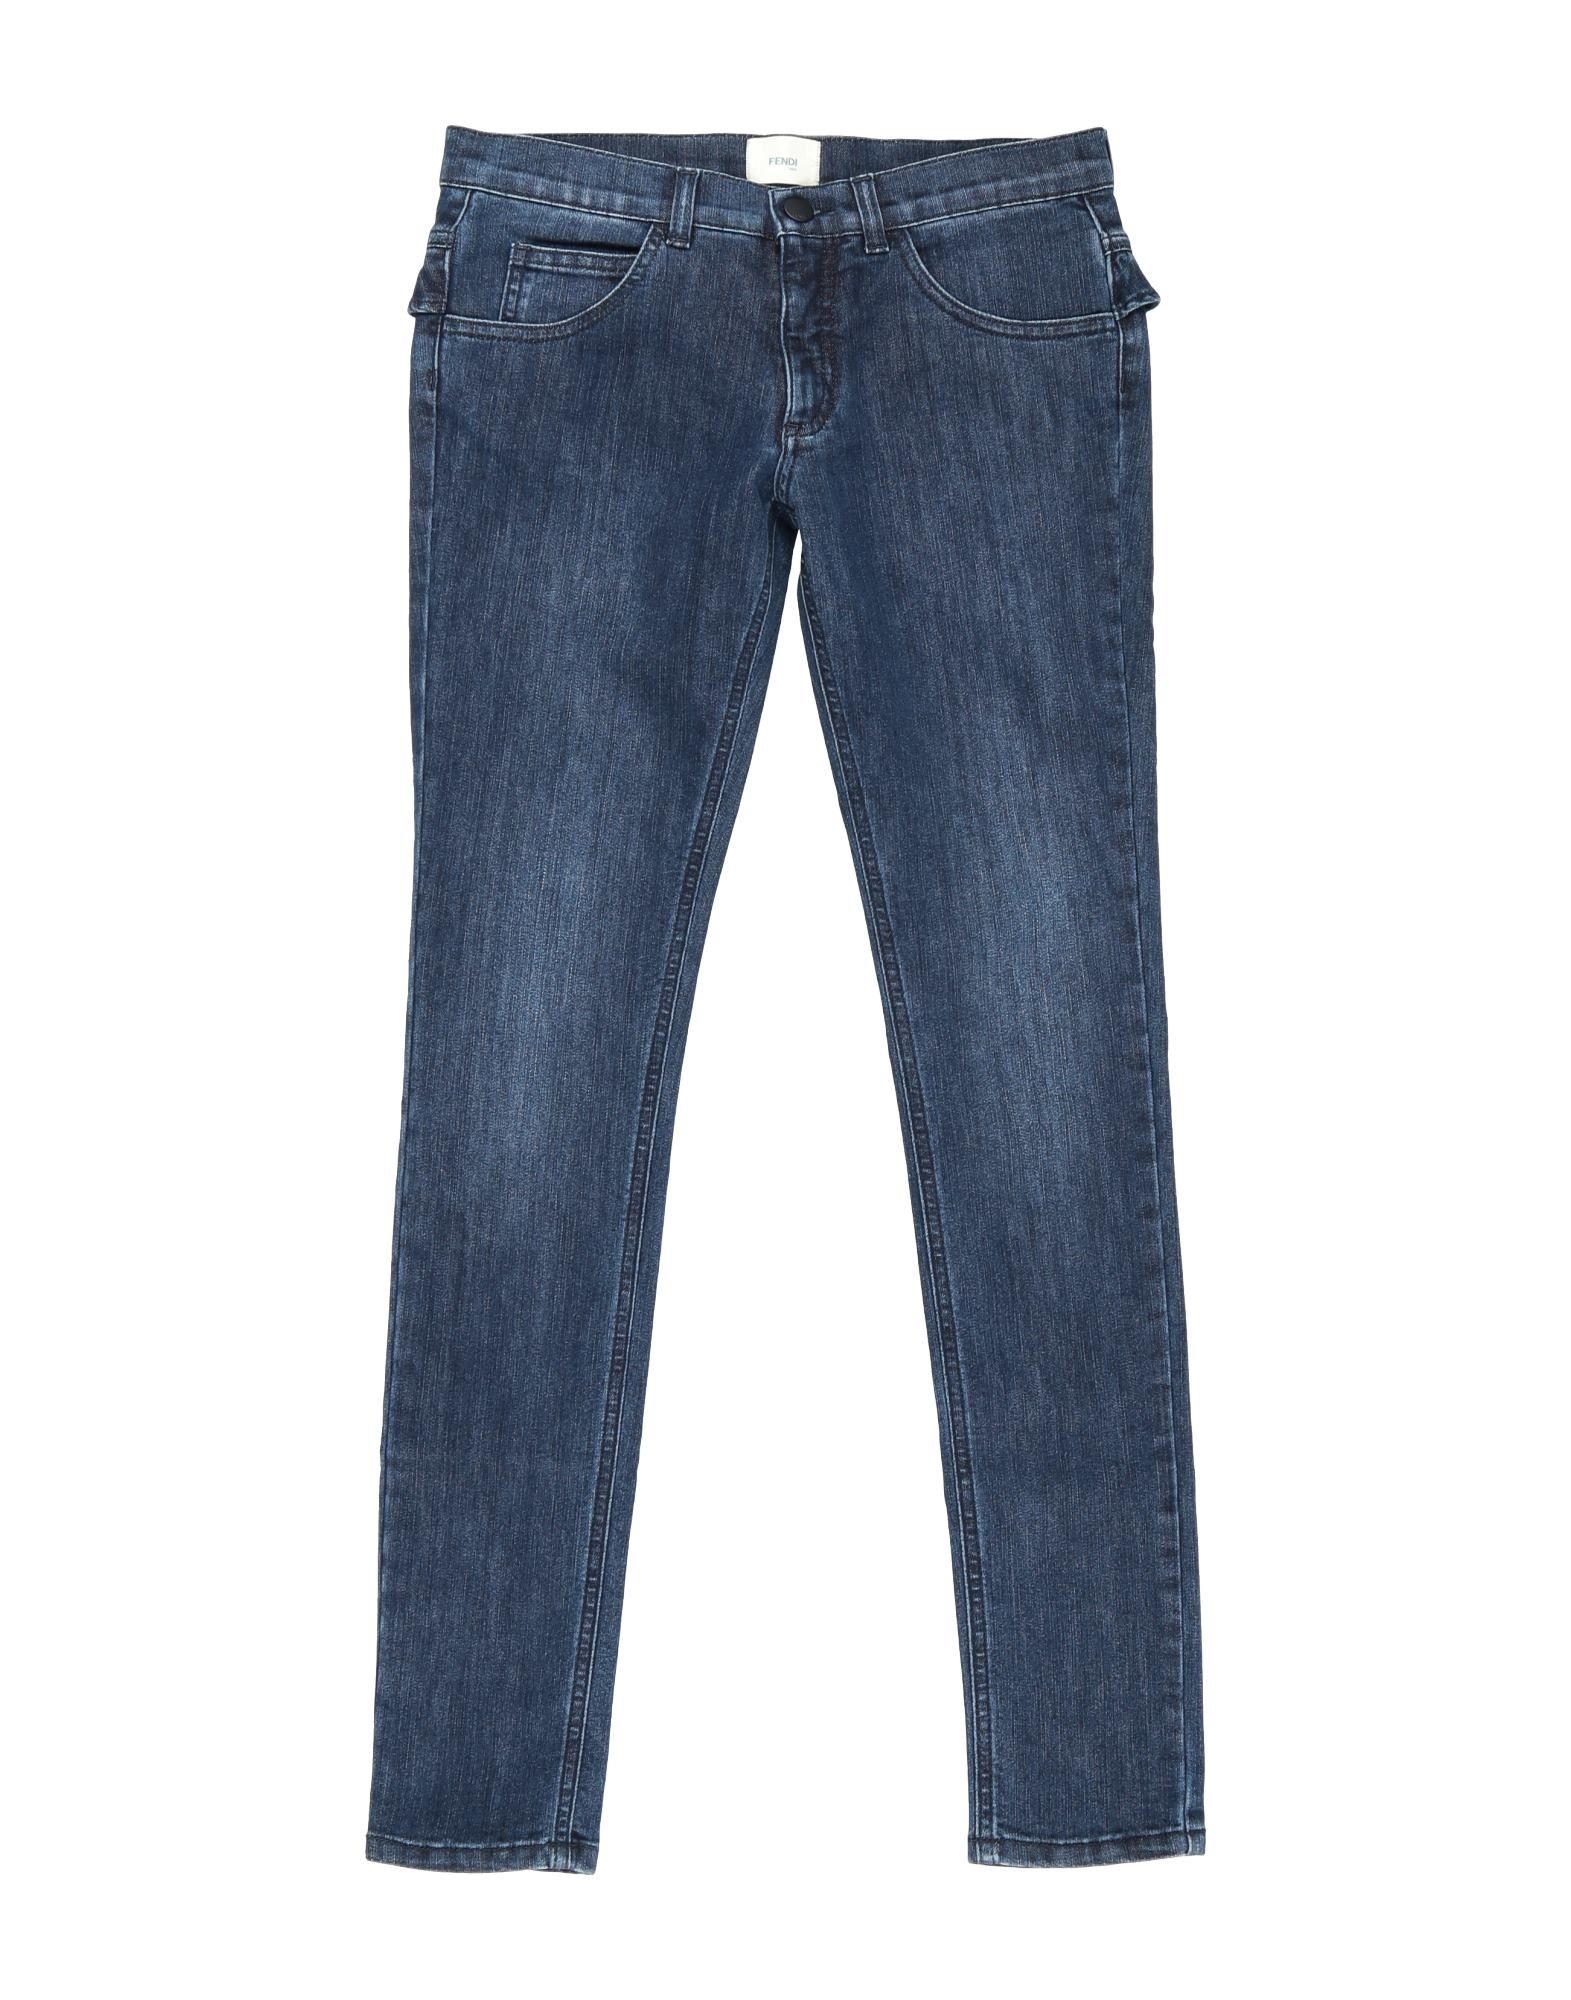 FENDI | FENDI Denim Pants 42740236 | Goxip